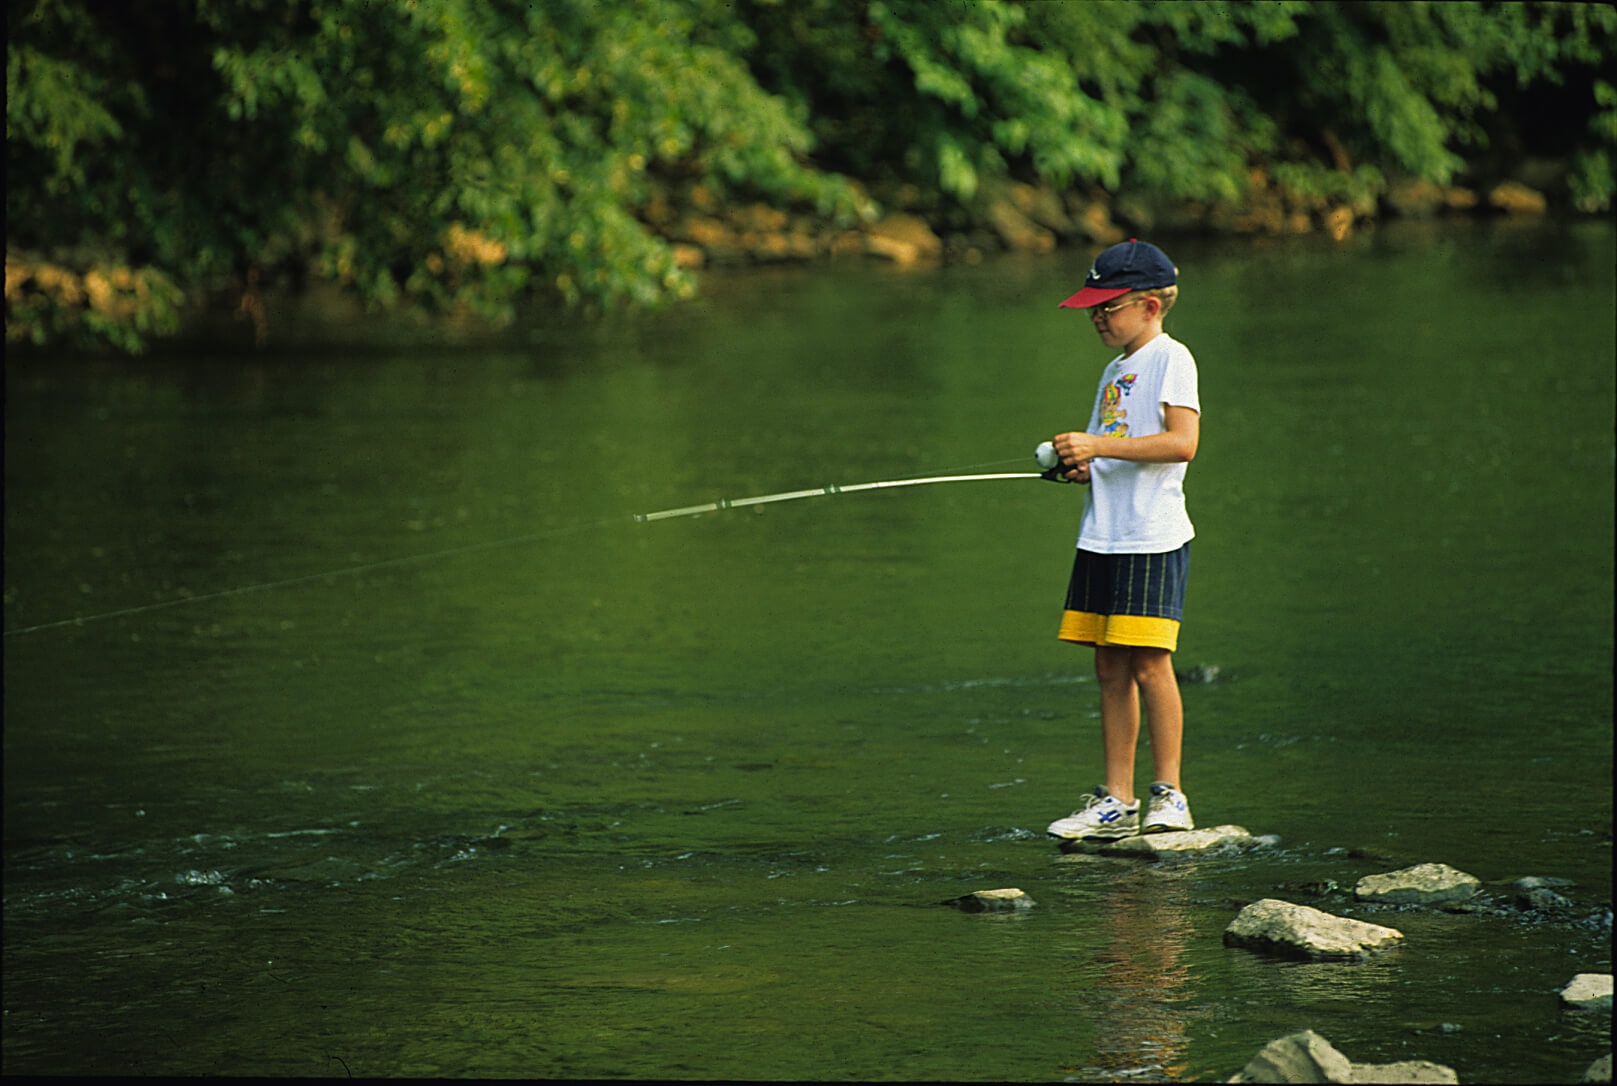 Kid fishing in Berks County creek.